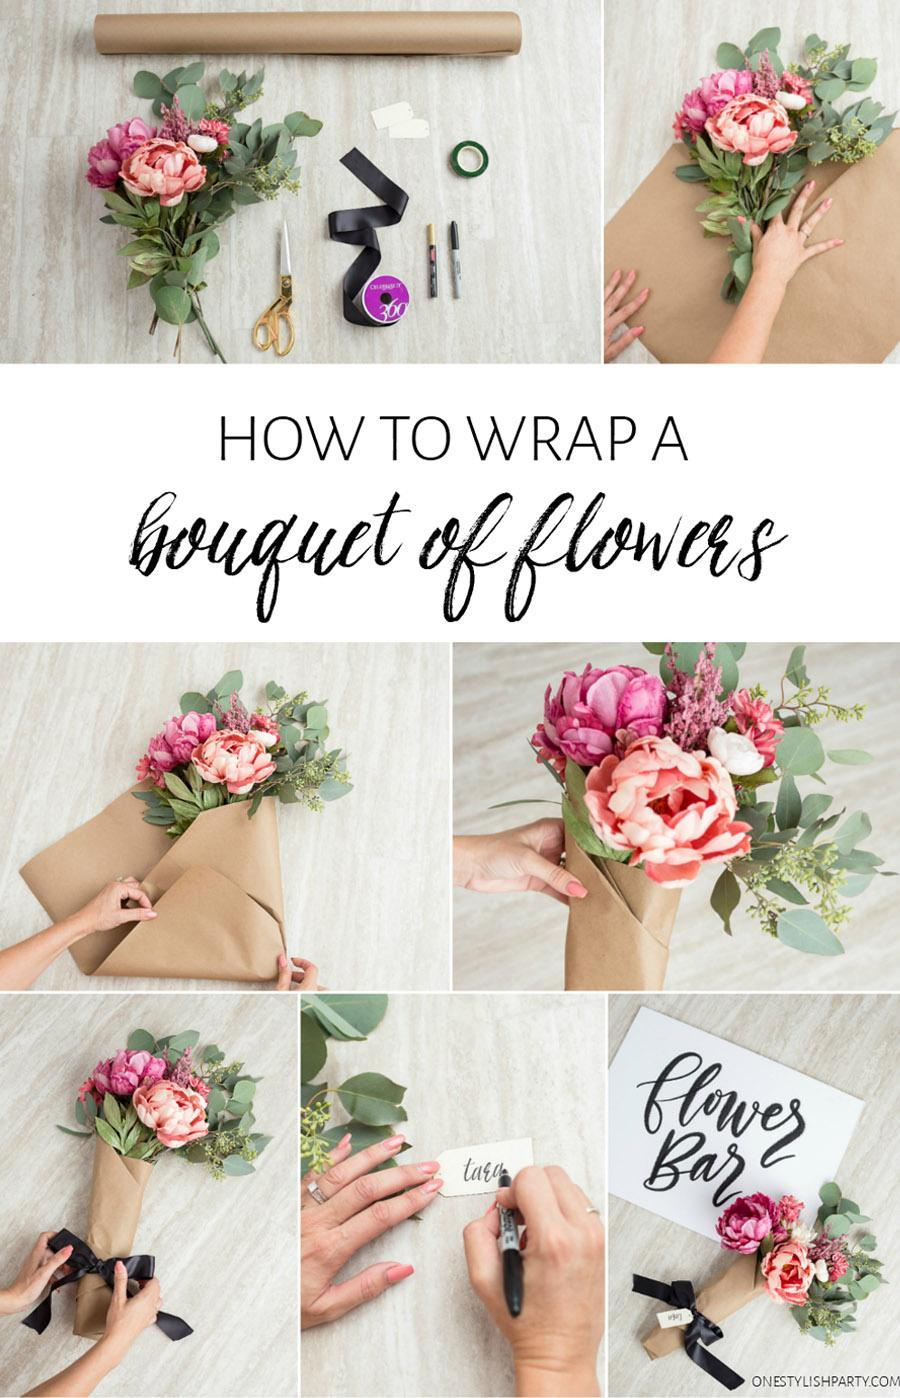 FLOWER BAR flowerbar-tutorial